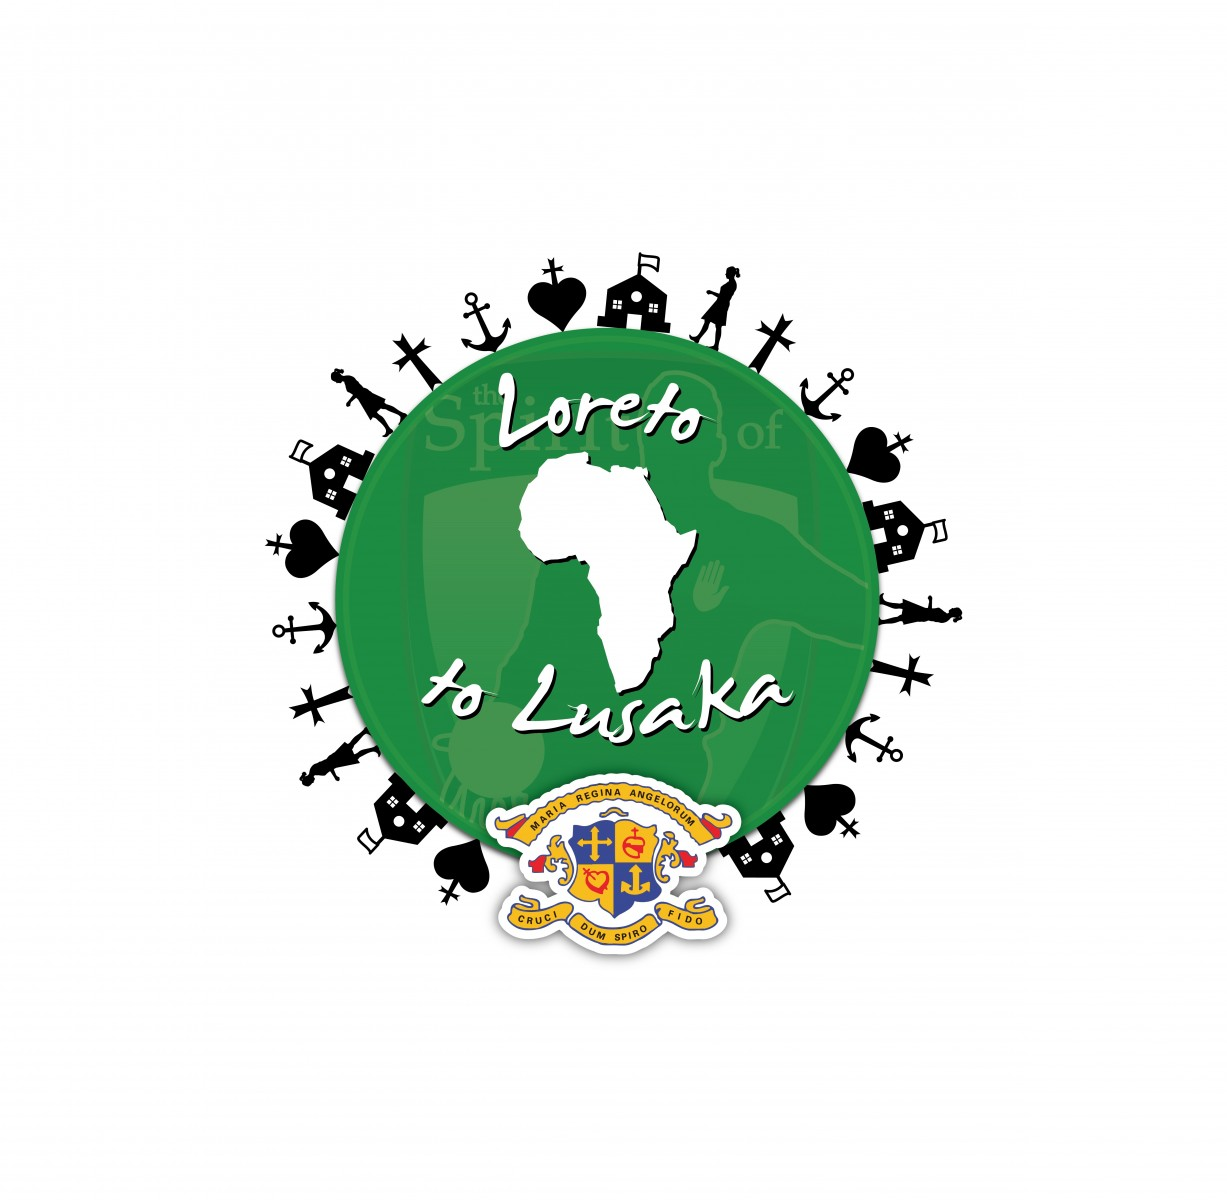 LORETO TO LUSAKA NEWS